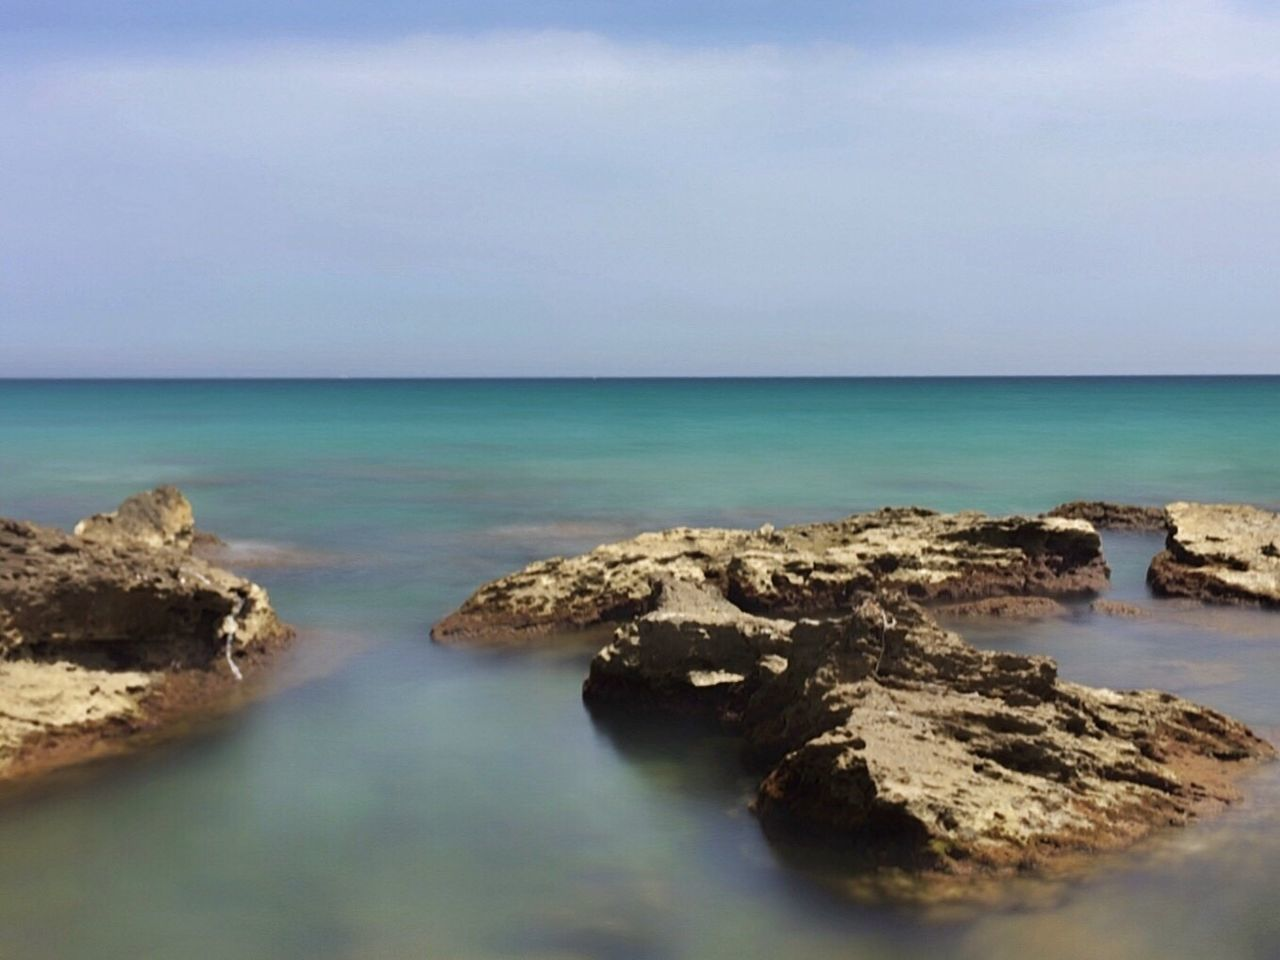 sea, horizon over water, water, beauty in nature, scenics, nature, sky, tranquility, tranquil scene, no people, beach, outdoors, day